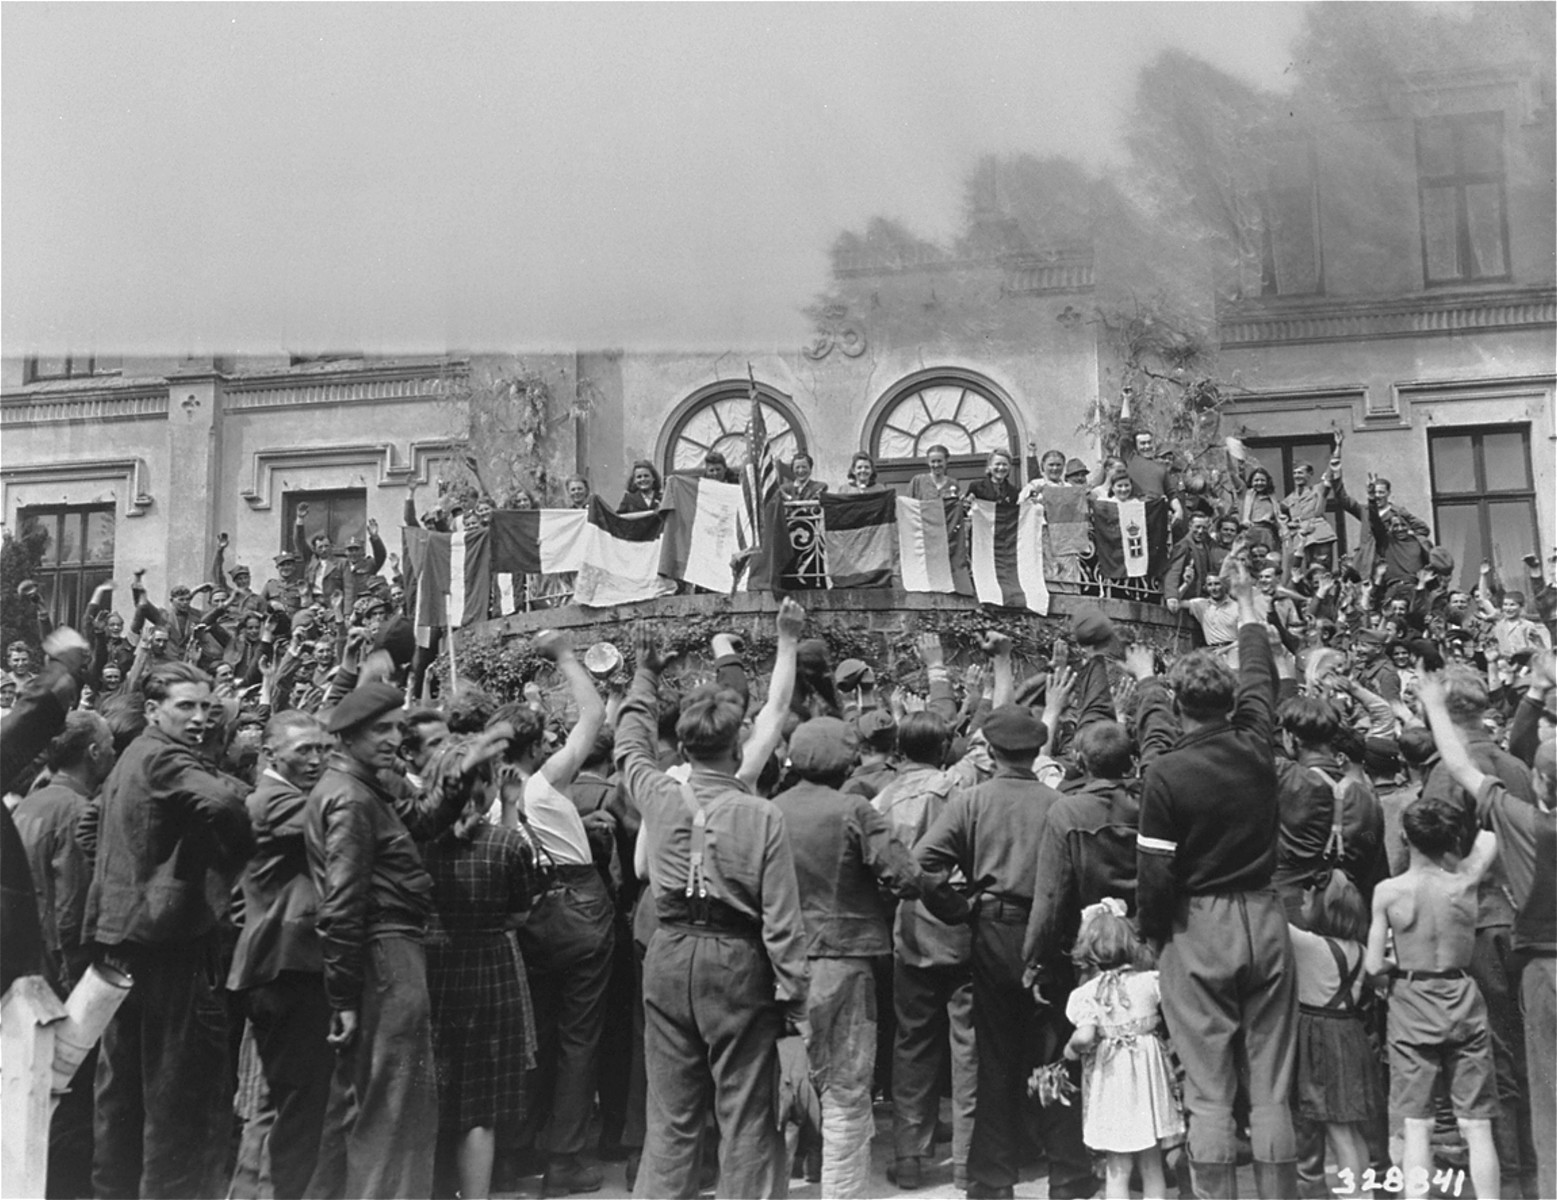 DPs of many nationalities take part in a flag ceremony at the Hagenow displaced persons camp.